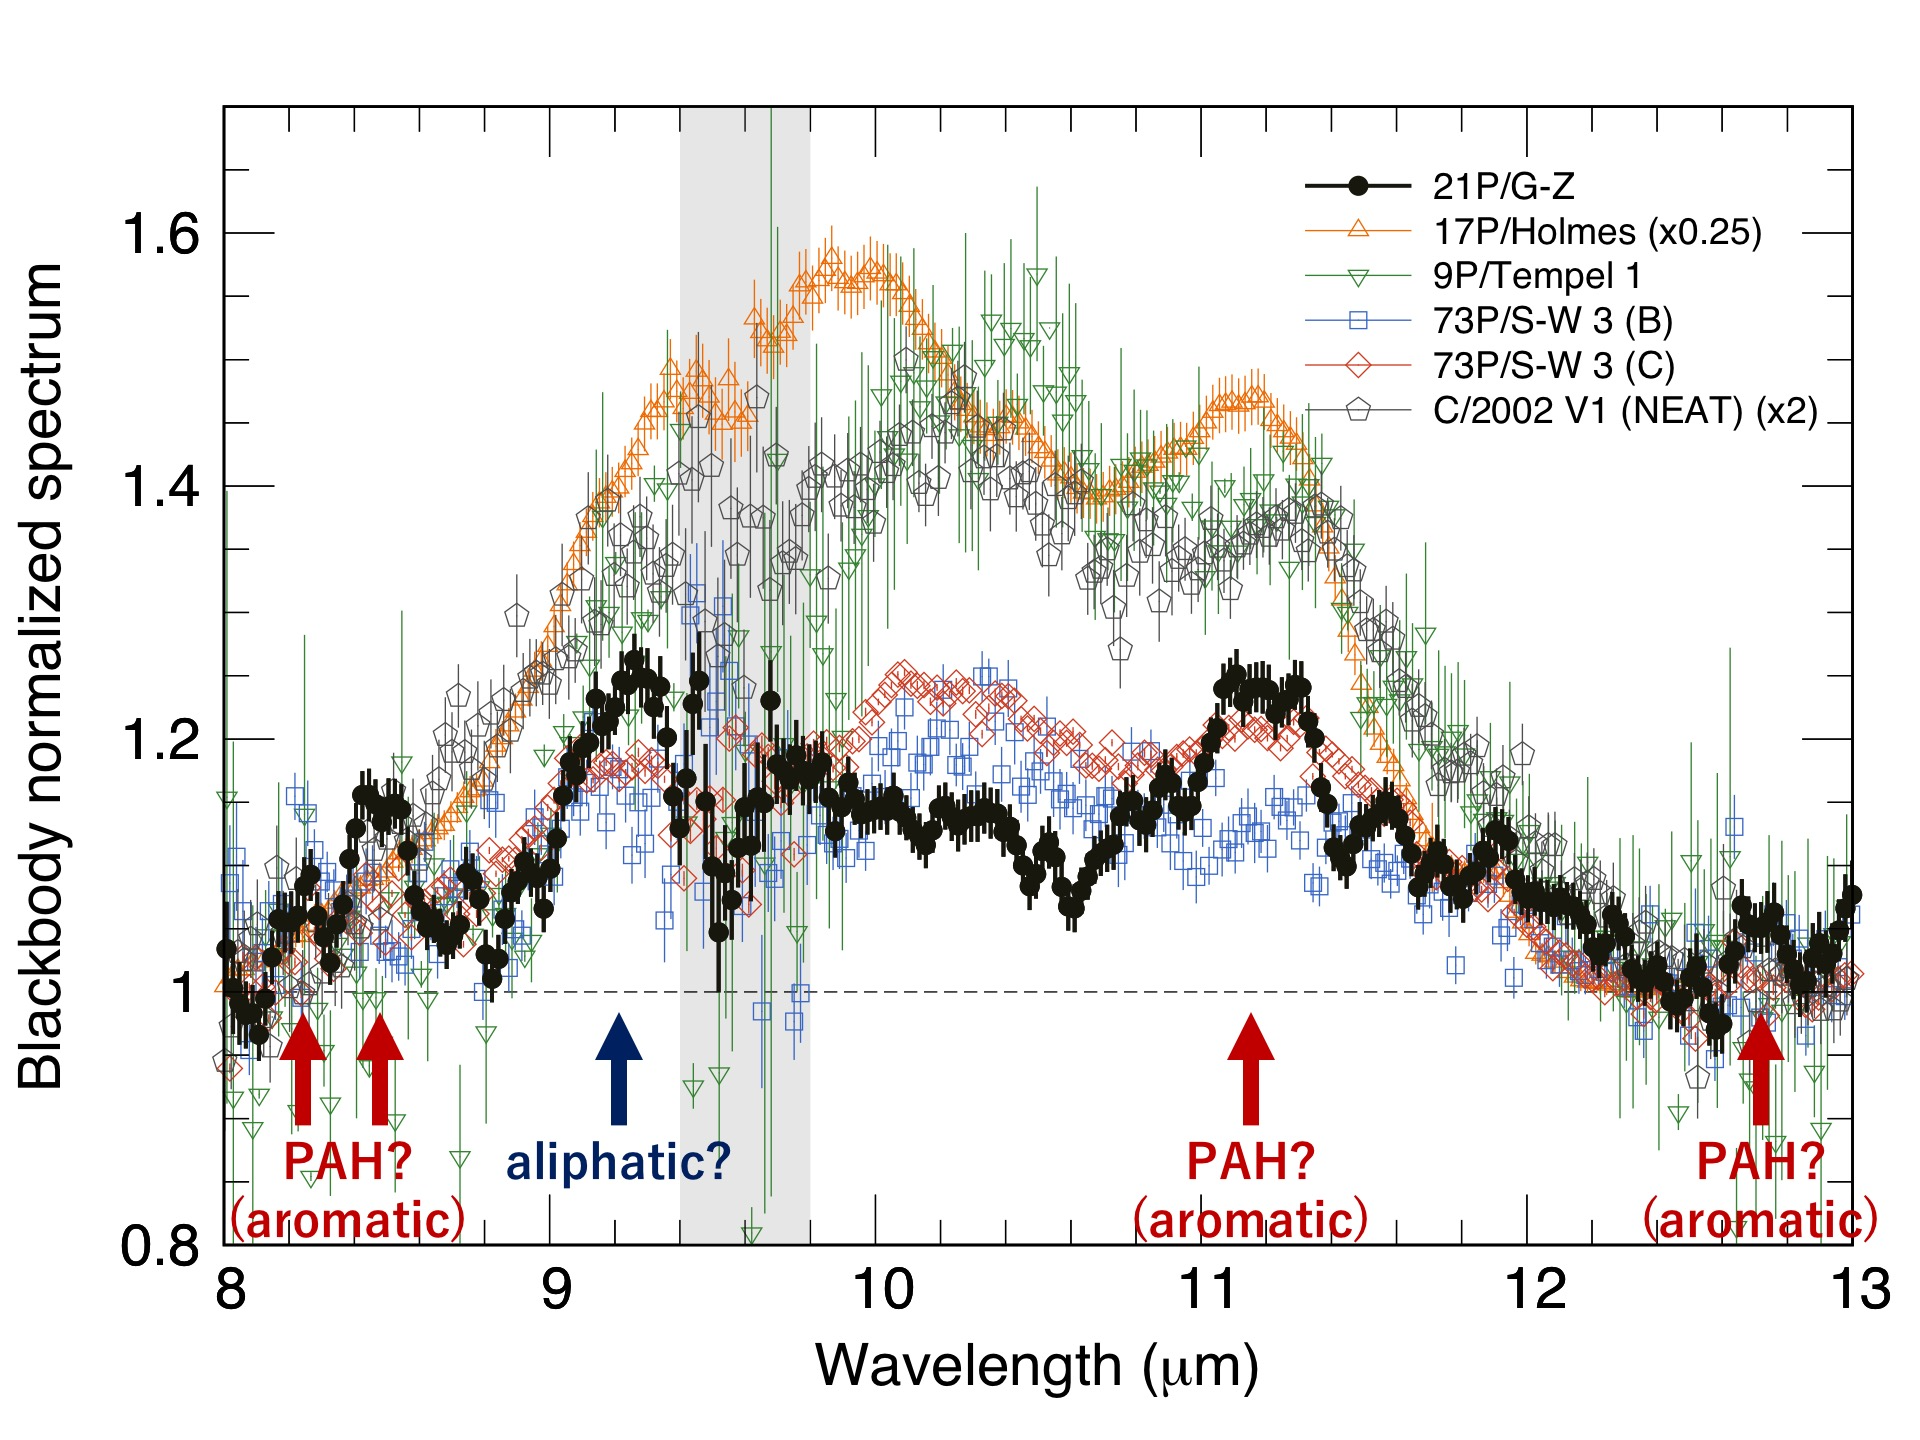 Subaru Telescope Detects the Mid-infrared Emission Band from Complex Organic Molecules in Comet 21P/Giacobini-Zinner Figure3